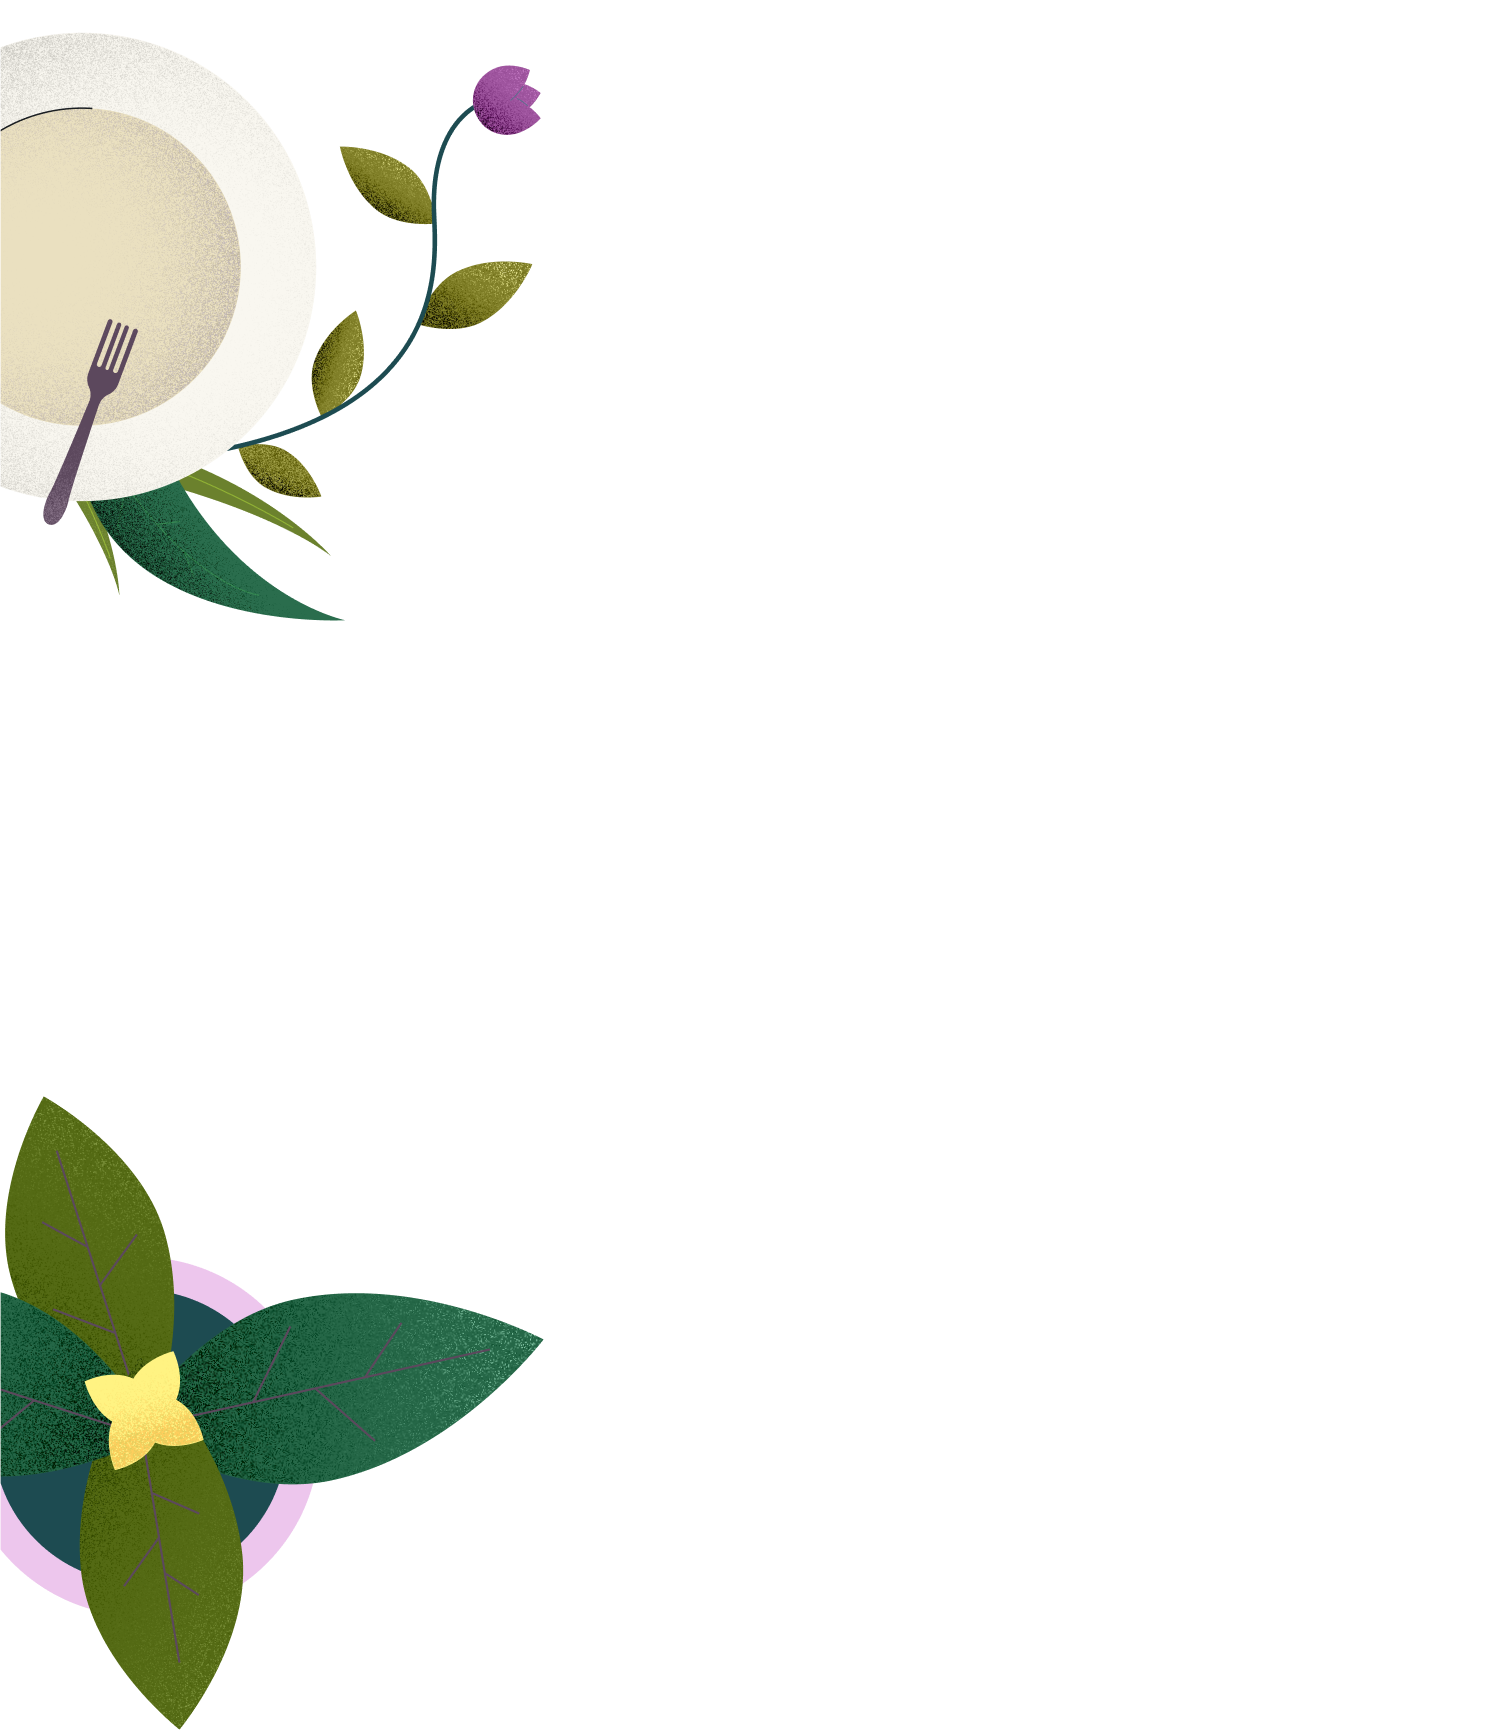 flower and coffee illustration